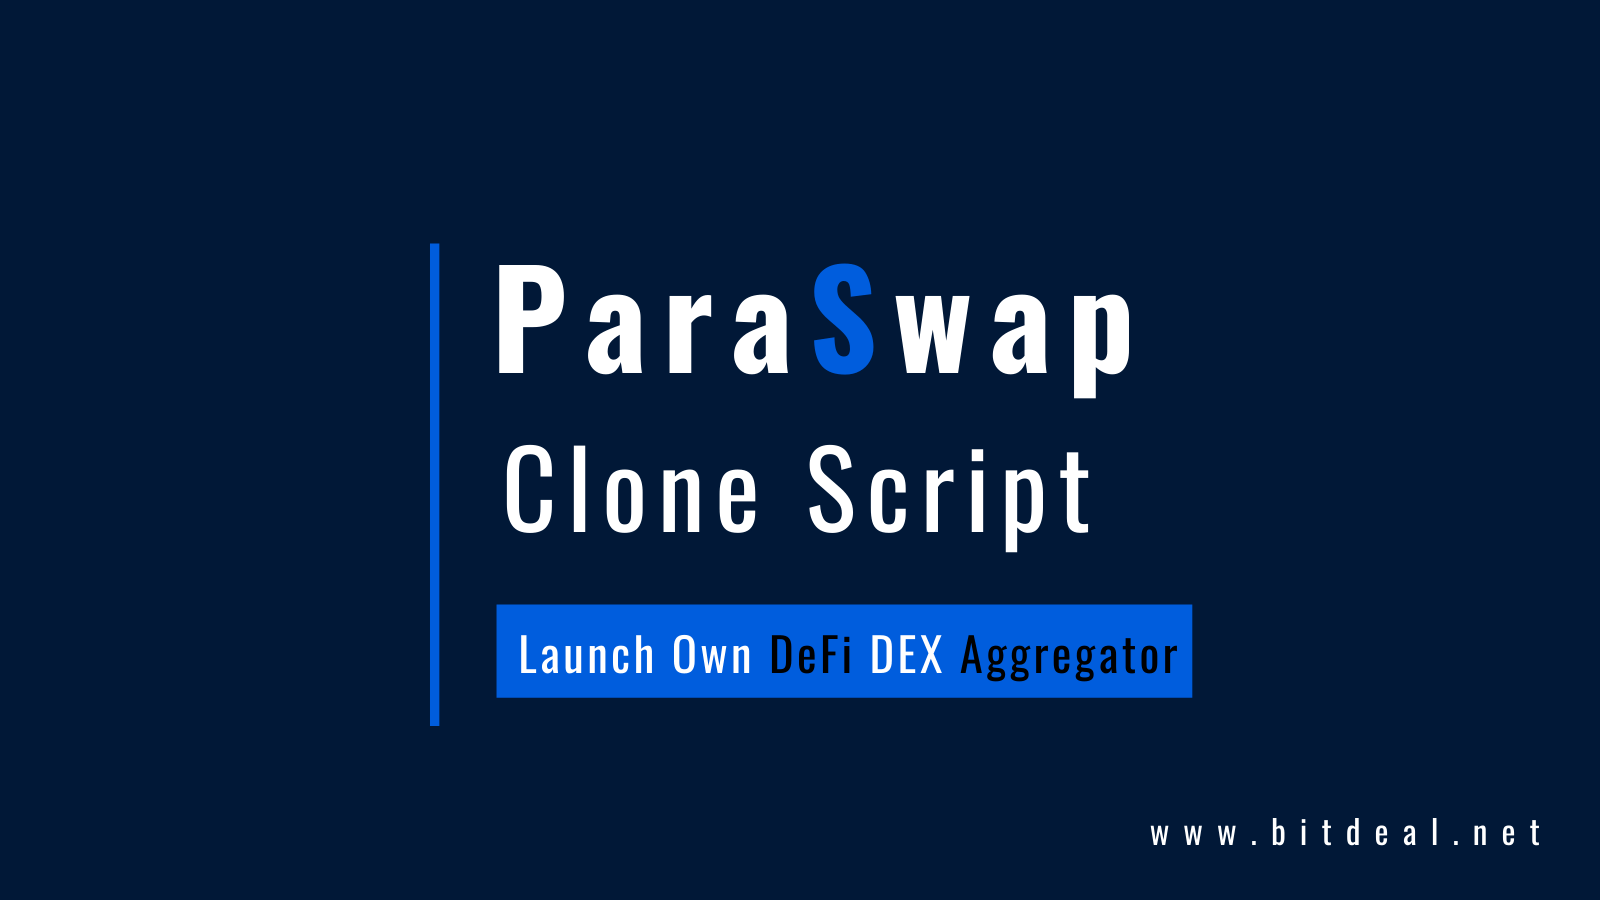 Paraswap Clone Script - Launch Your Own DeFi Based DEX Aggregator